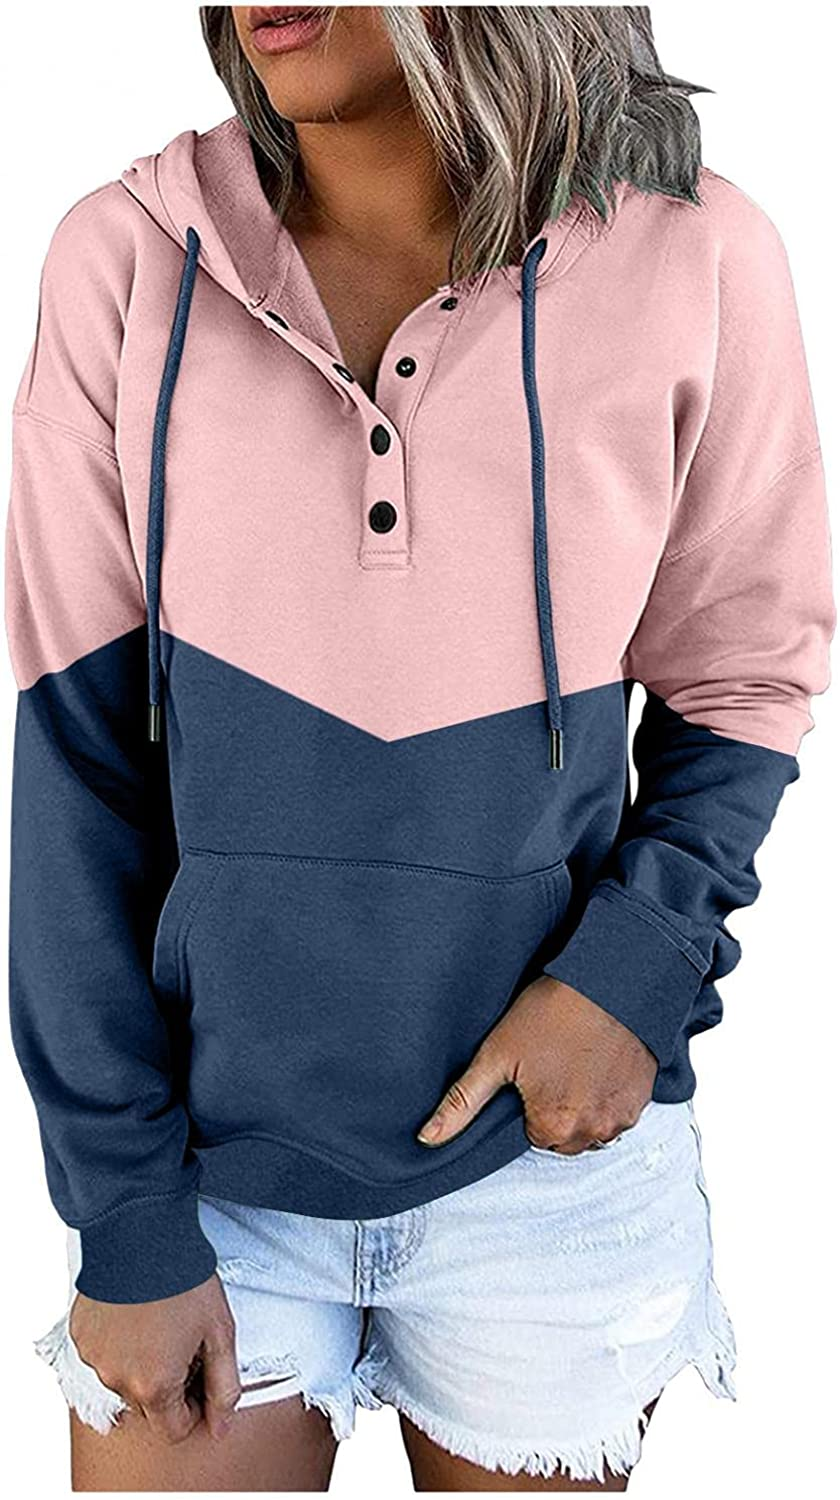 siilsaa Hoodies for Women Girls Color Sw Cheap bargain Button Tunic Down Block Max 66% OFF